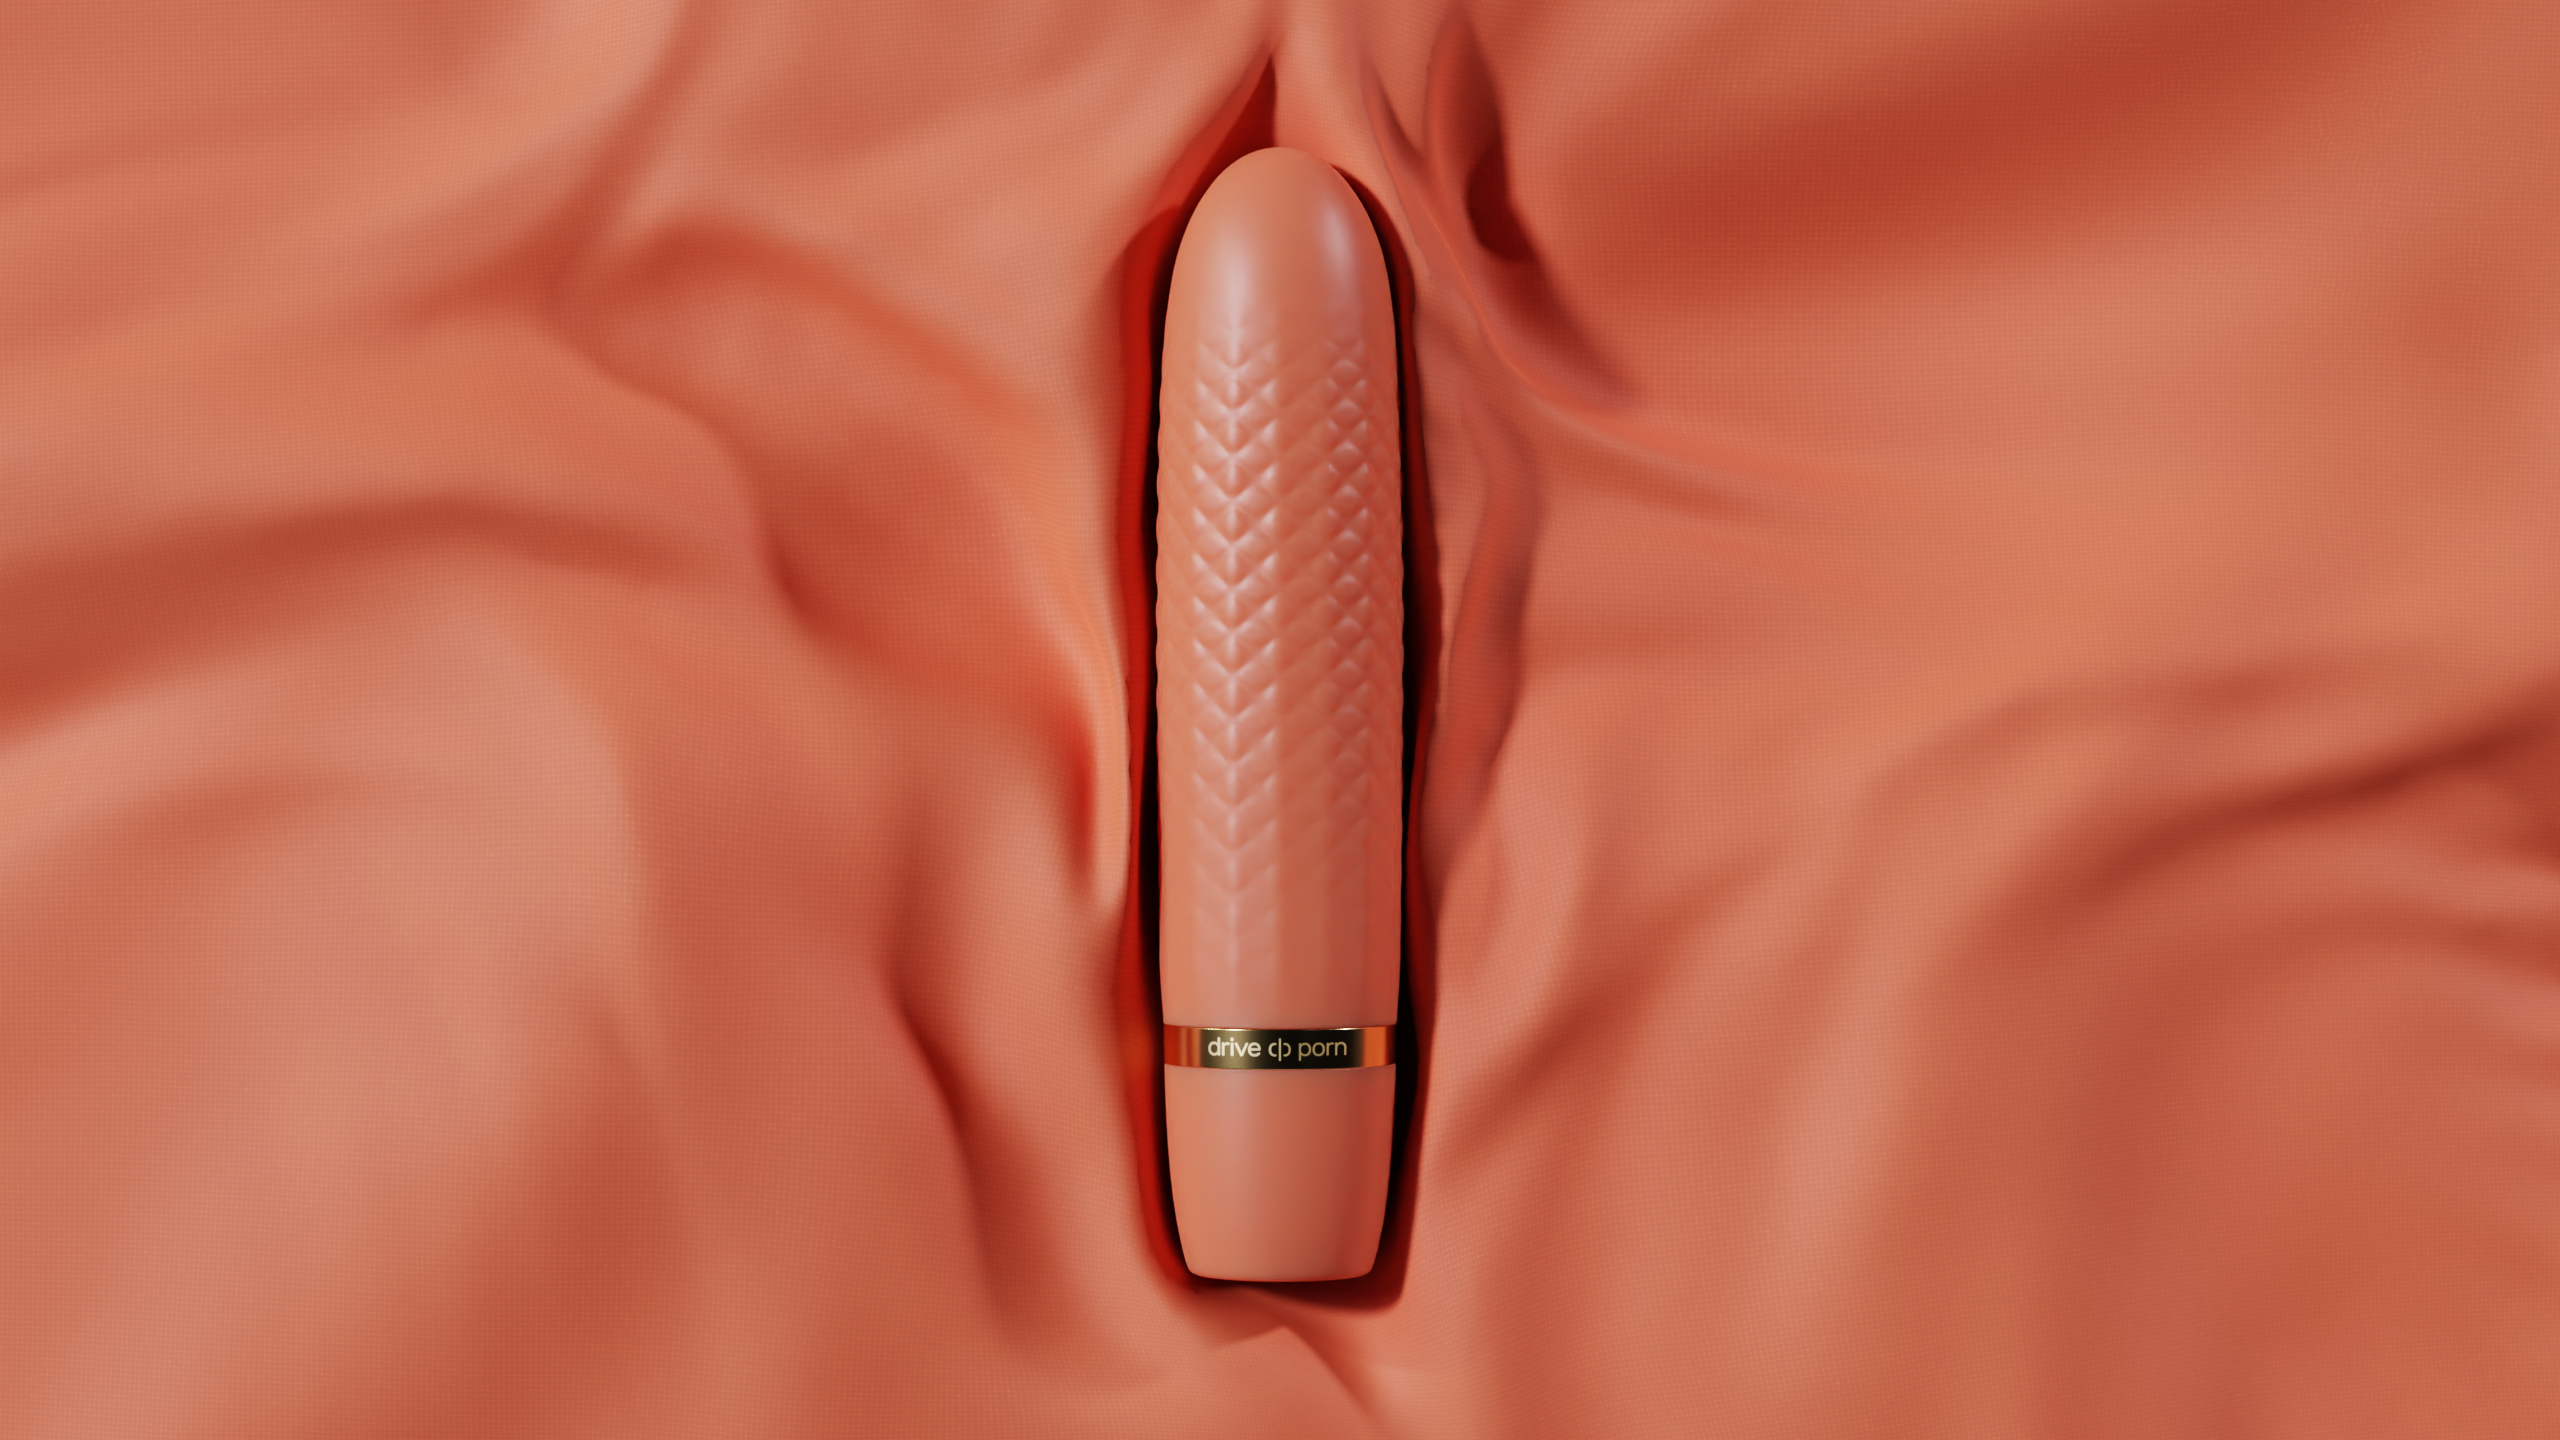 orange structured adult toy with golden text lying on orange fabric